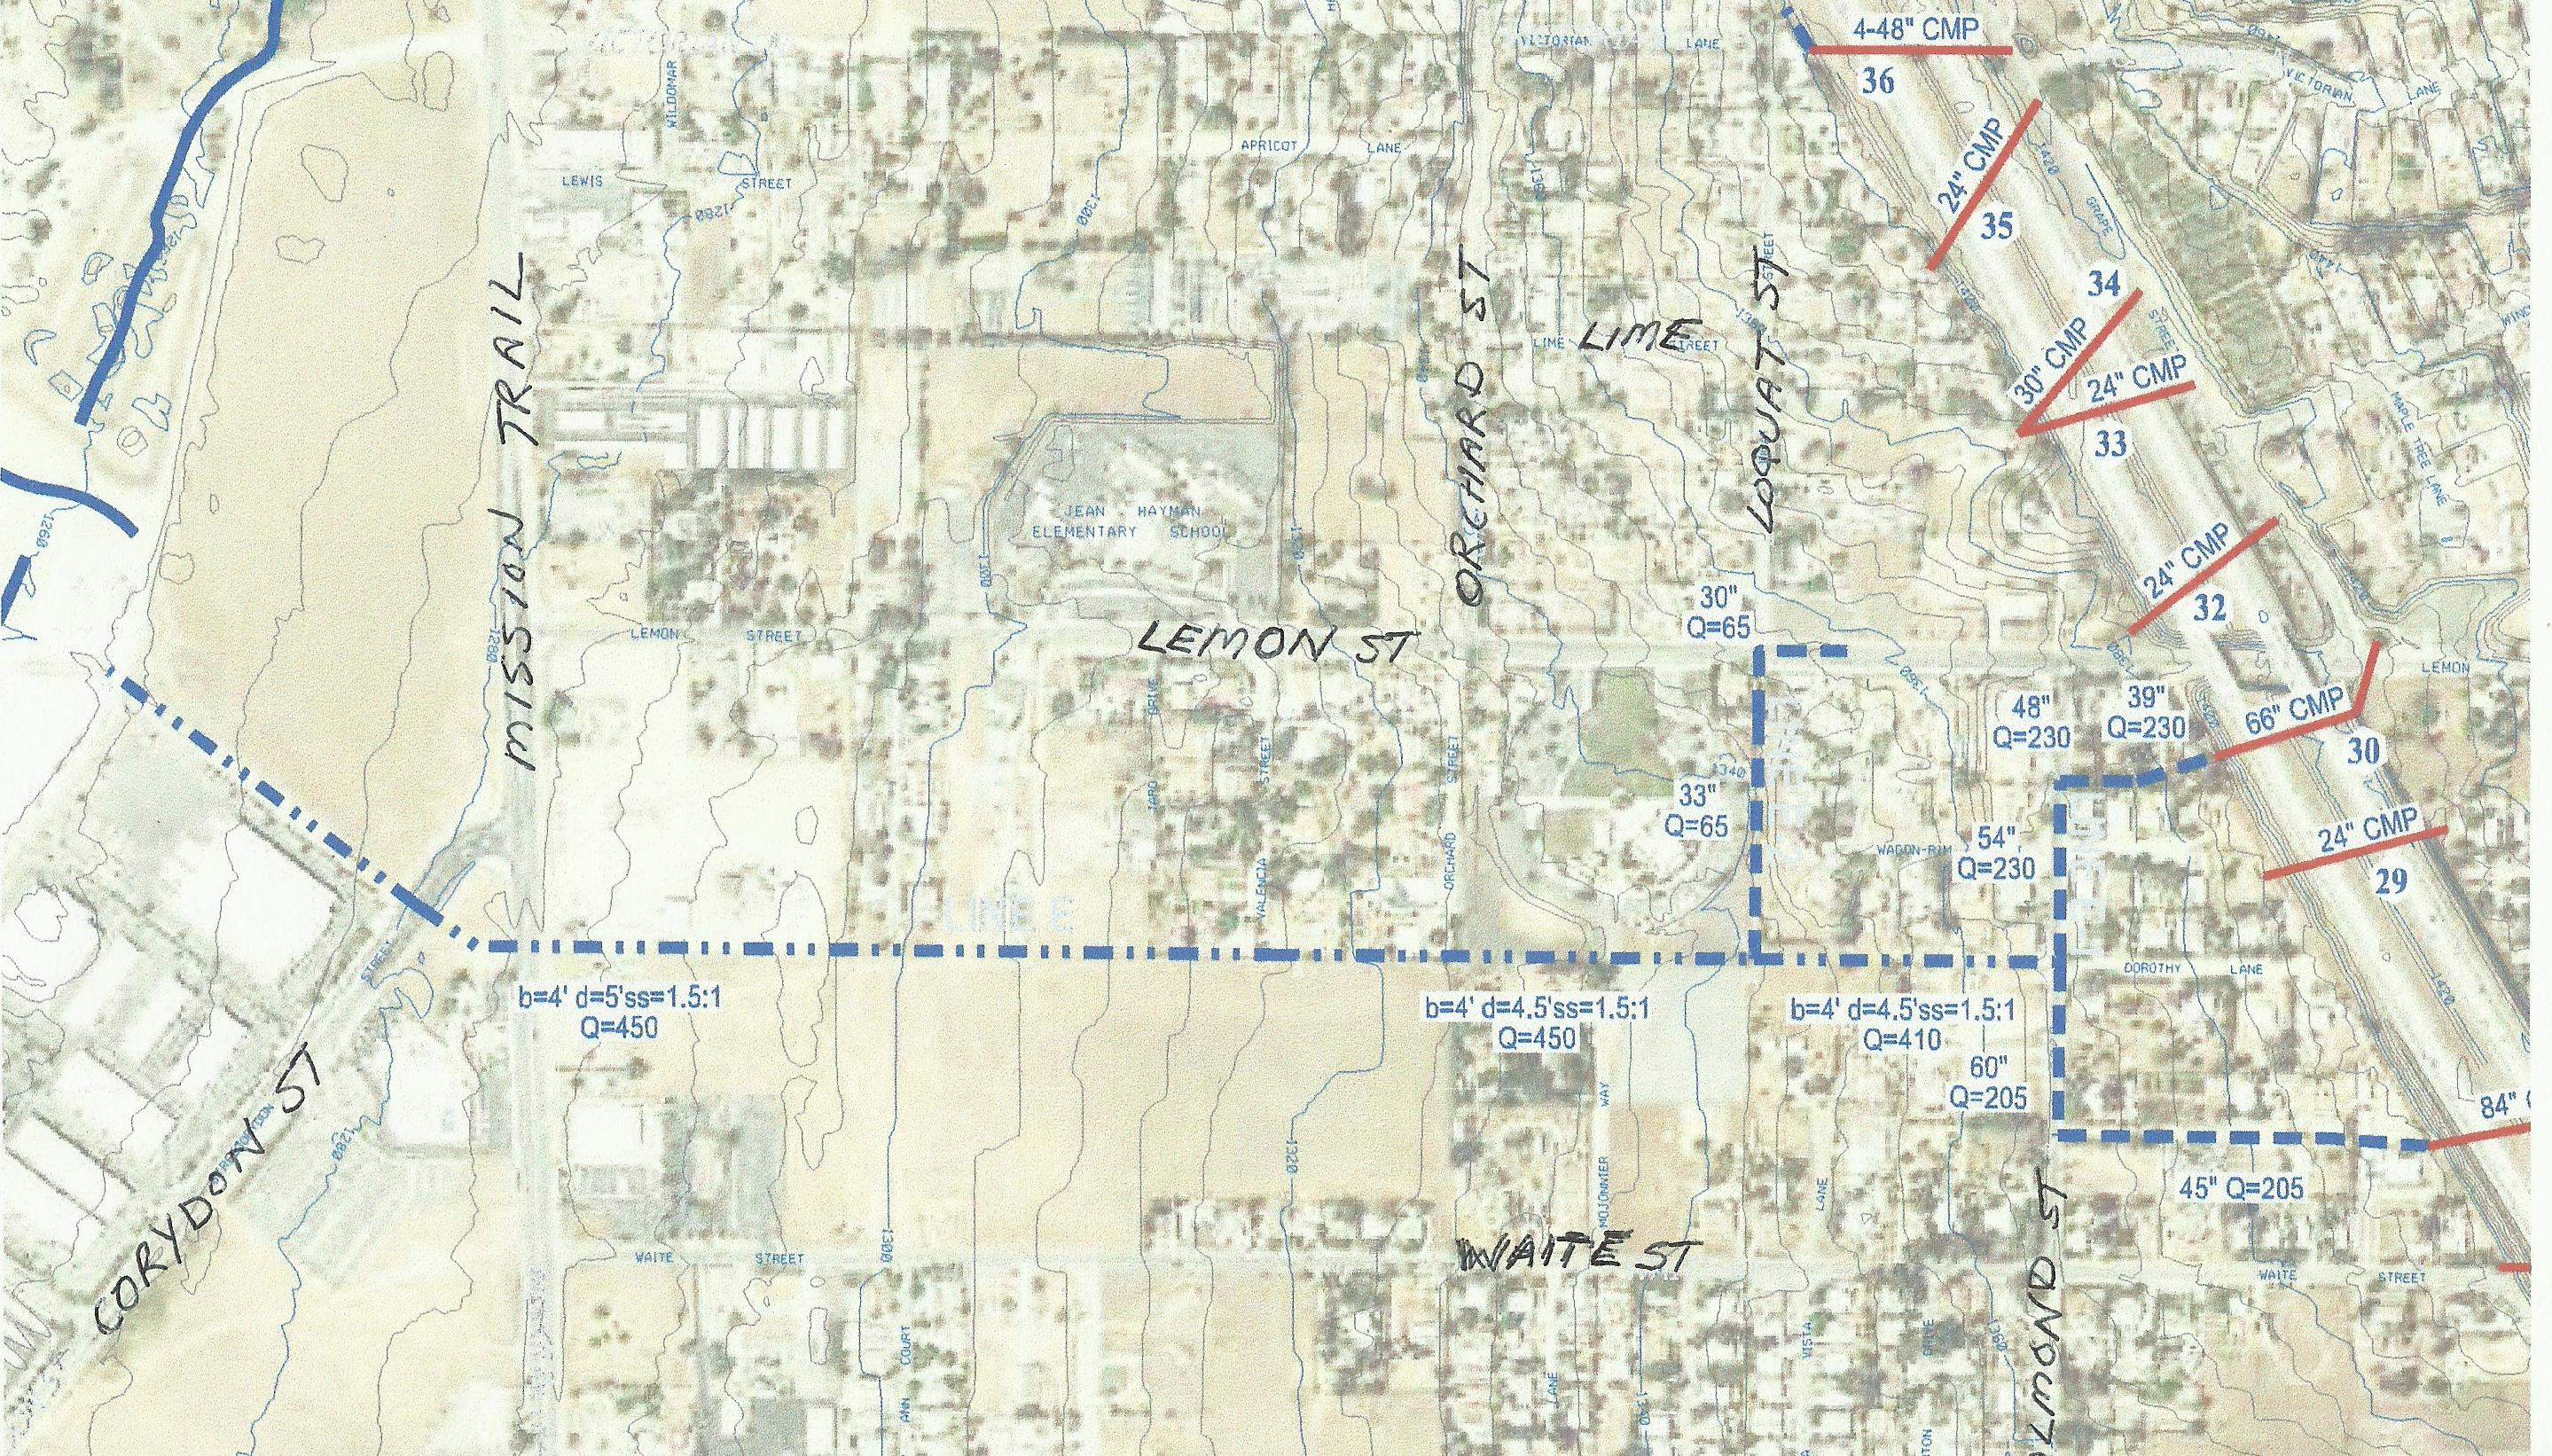 2014 digital exhibit map from RCFC&WFC